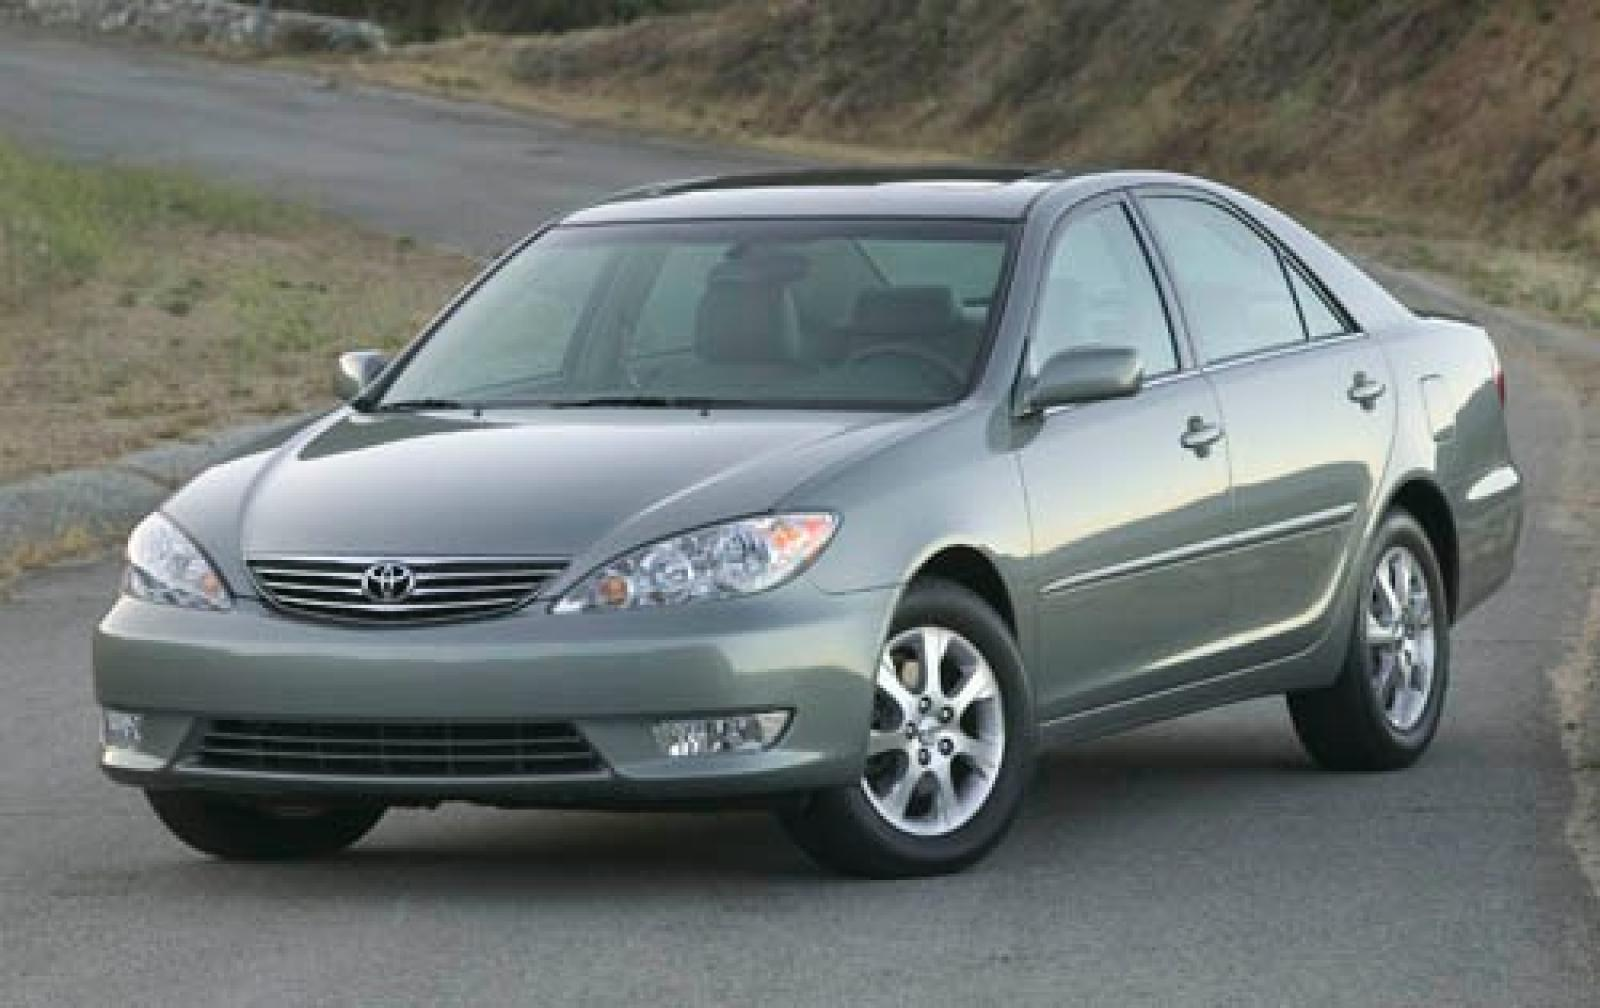 2005 Toyota Camry Information And Photos Zomb Drive